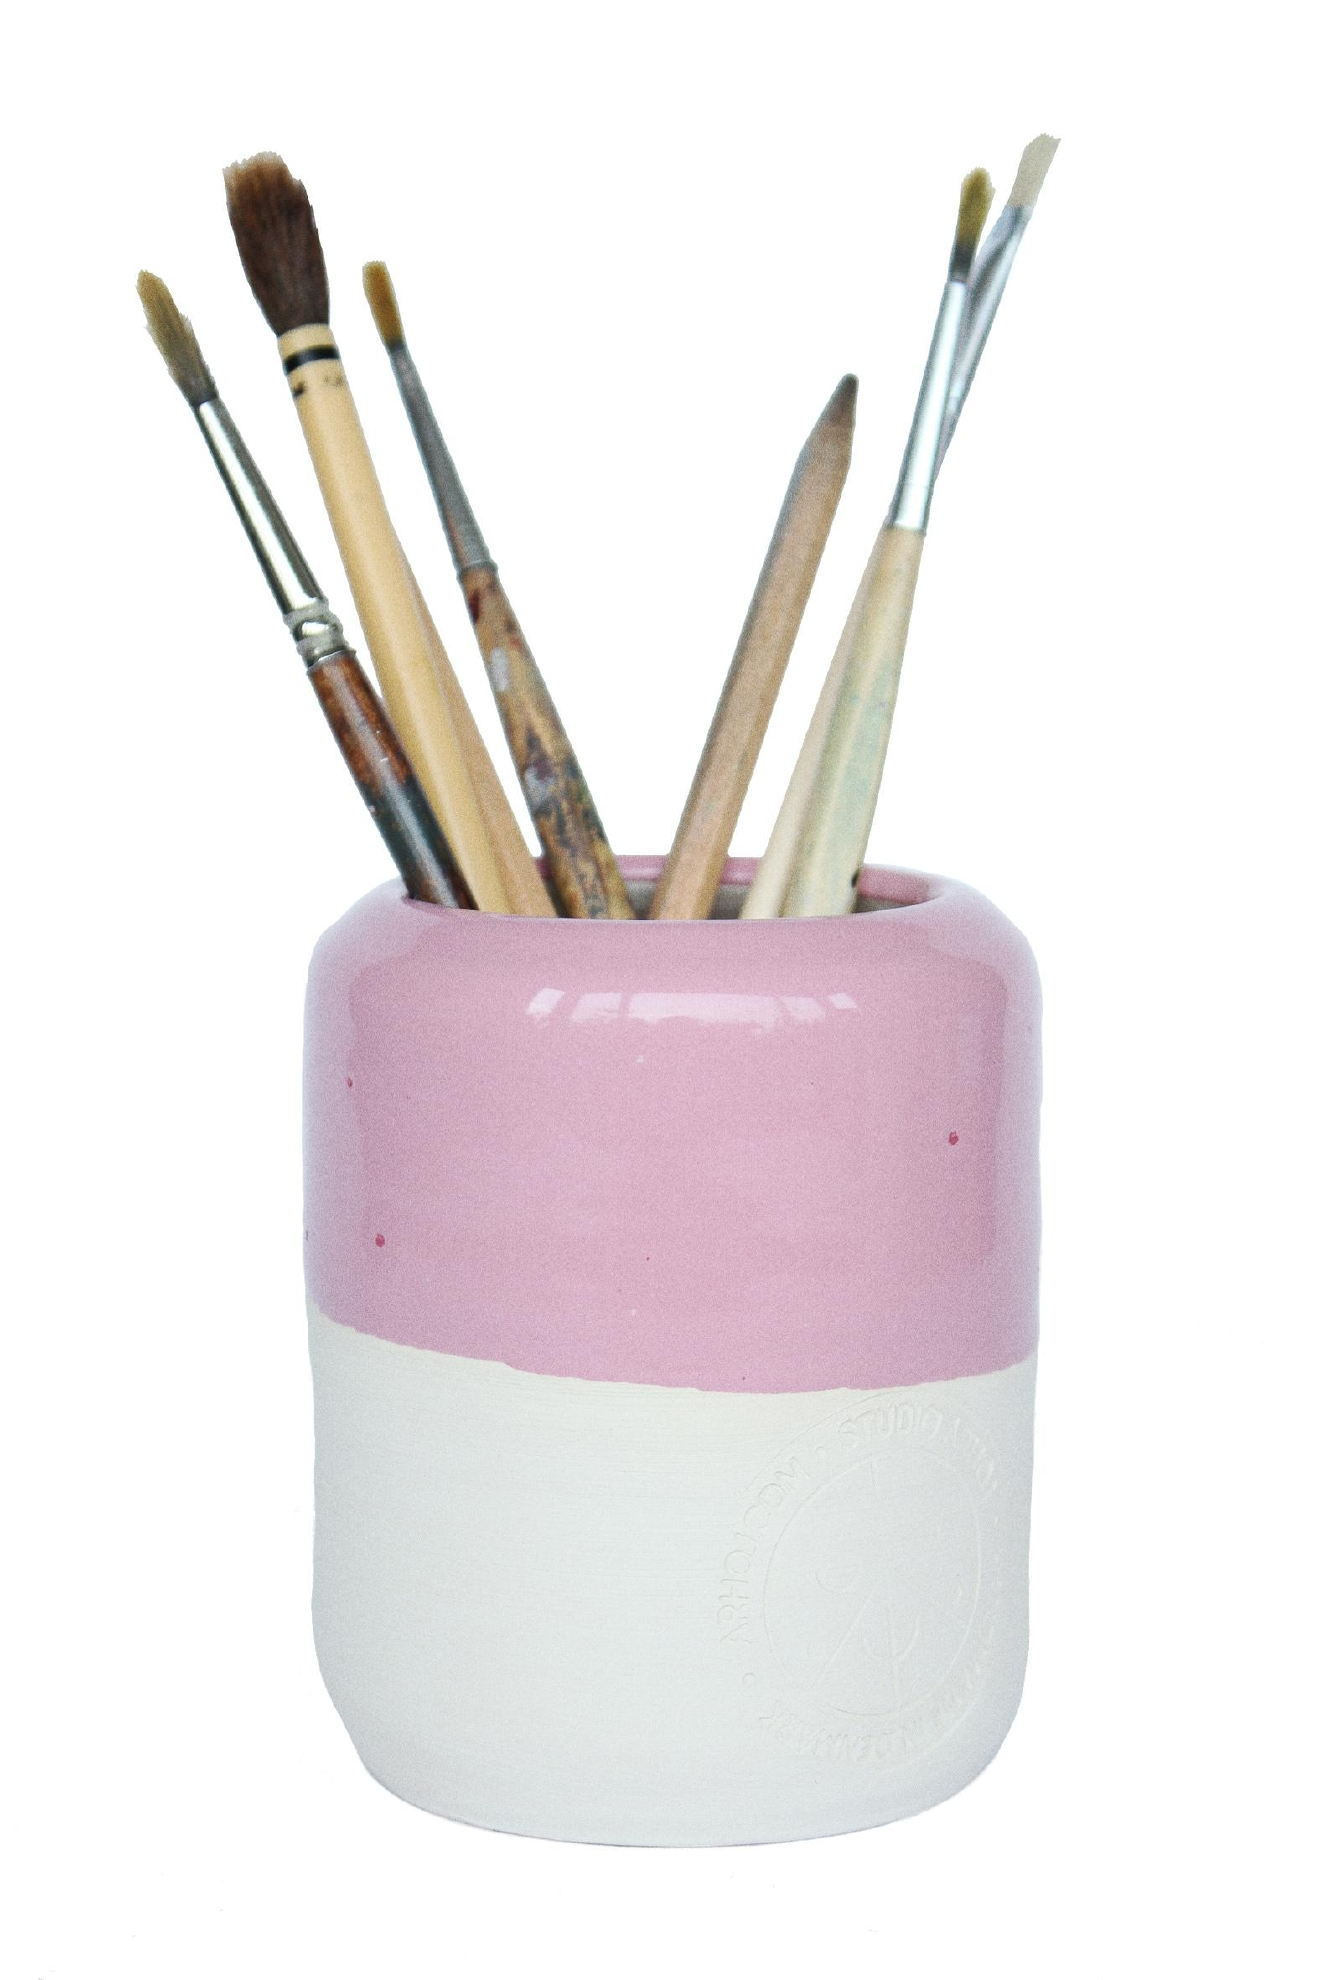 Studio Arhoj Pen Holder, Pink - $42. Buy at shop.nordstrom.com/c/pop-in-olivia-kim (Image: Nordstrom)